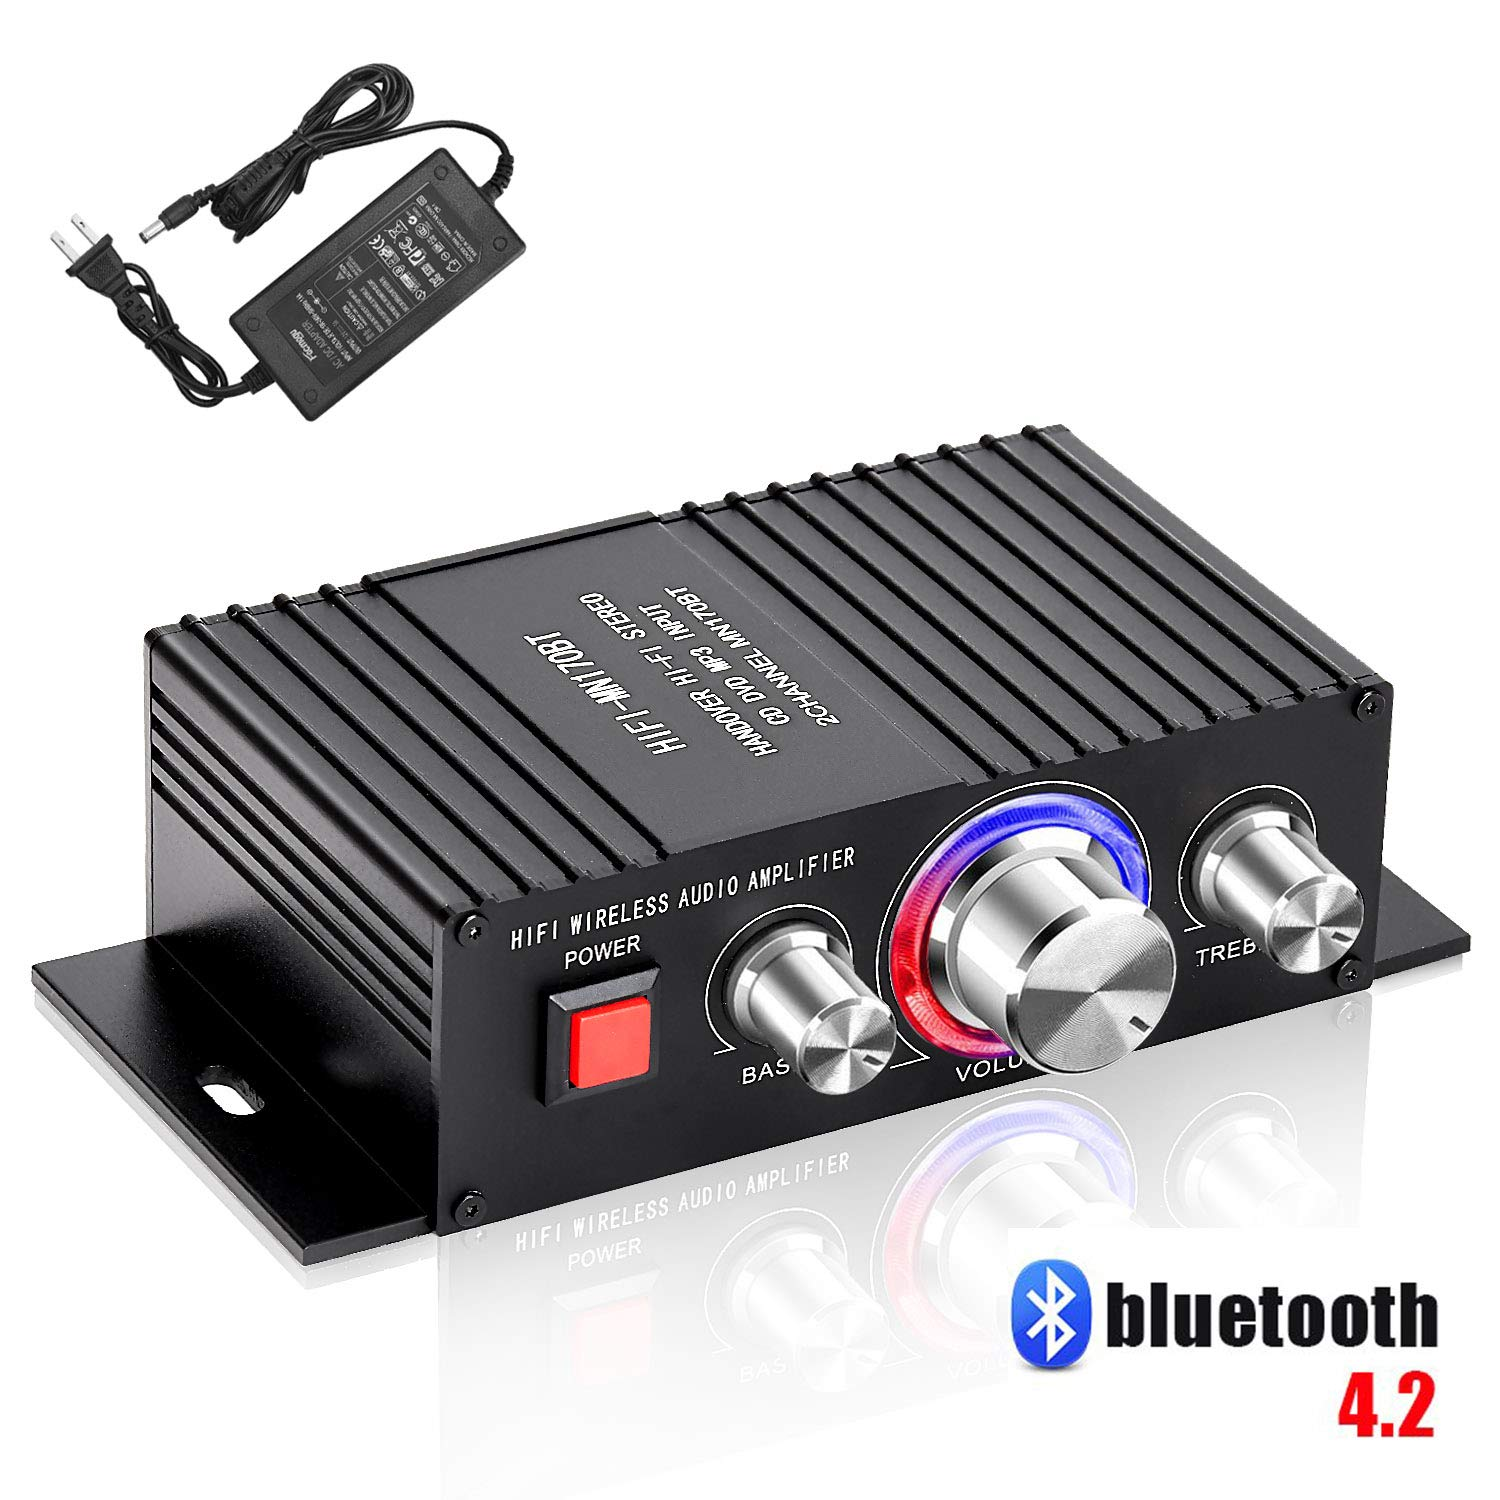 HiFi Audio Mini Amplifier with Power Cord DC 12V 3A - Bluetooth 4.2 Digital 2 Channel 30W x 2 Home Stereo Power Amplifiers with Blue LED Indicator Black (Amplifier Adapter)